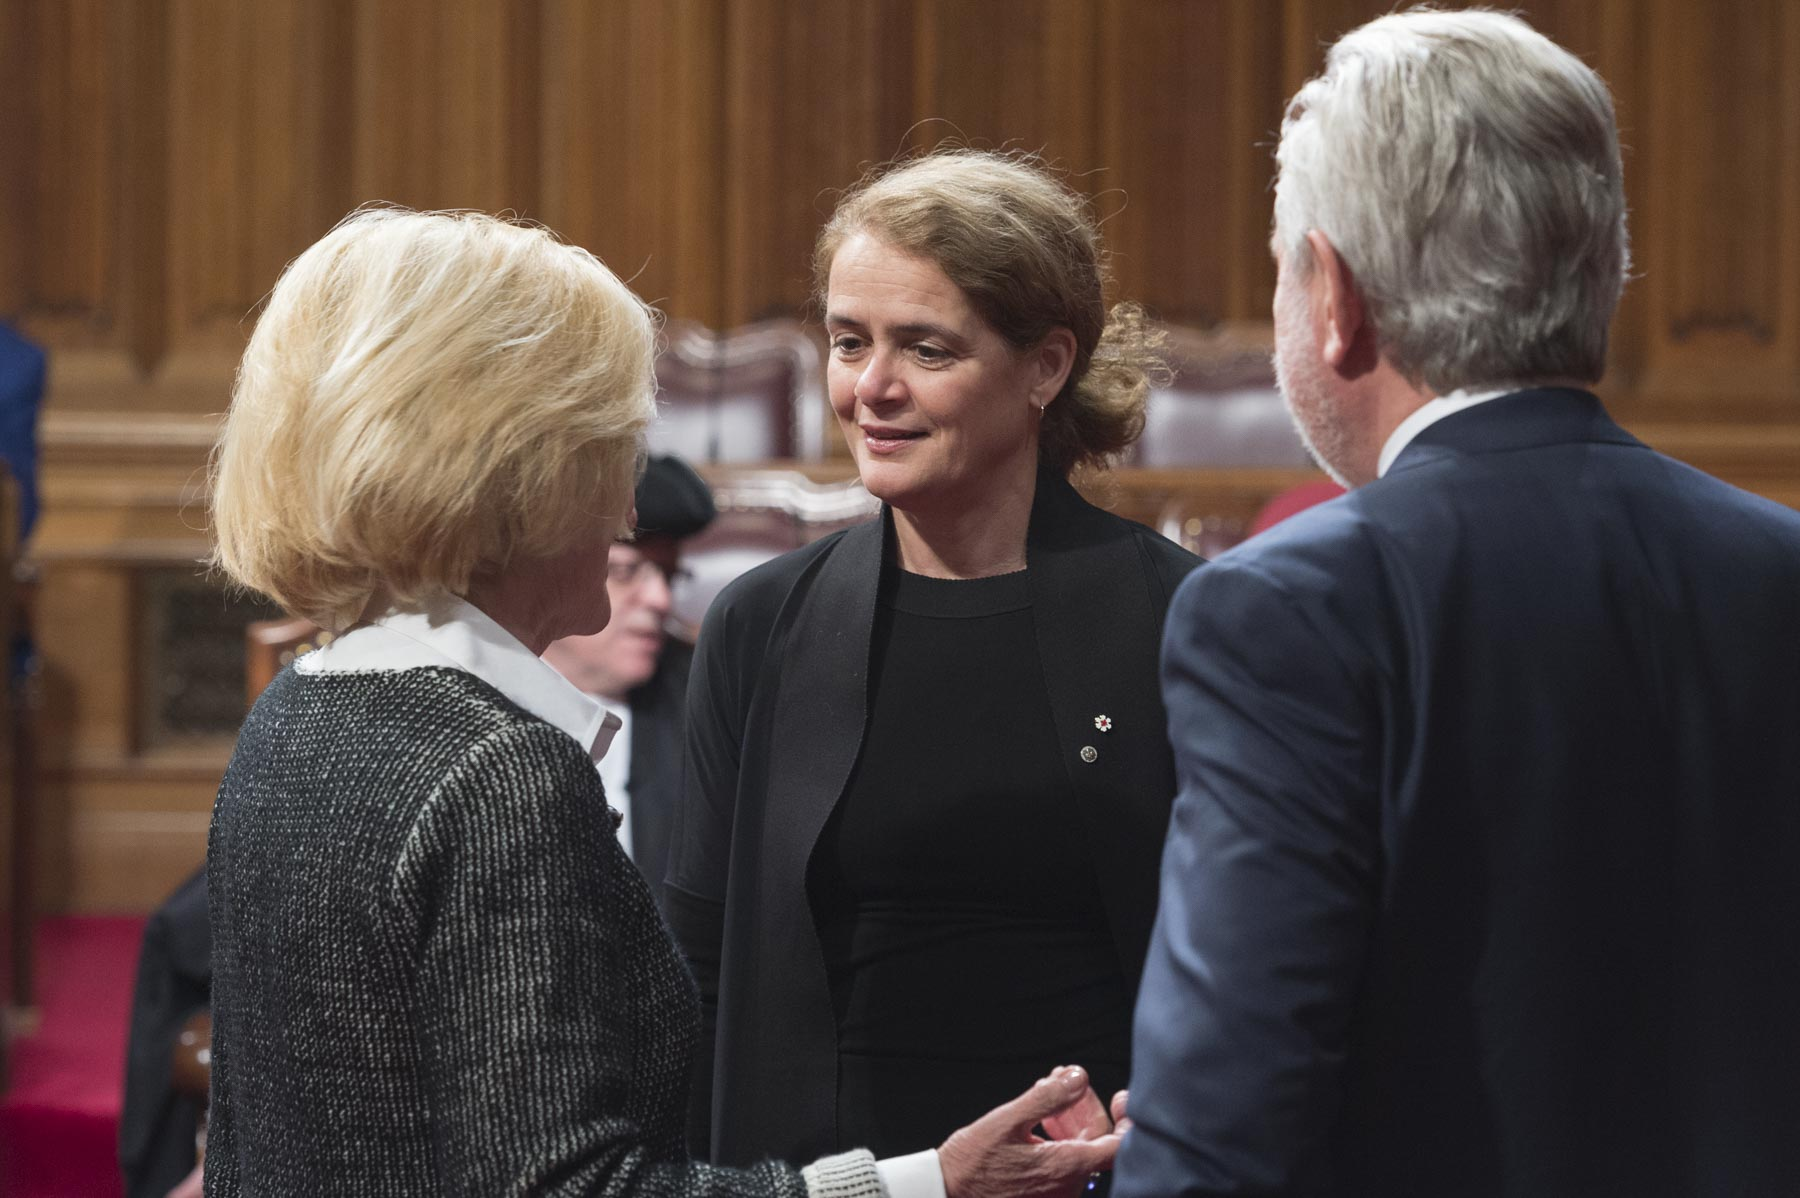 Before the official portion of the ceremony, Her Excellency walked inside the Senate Chamber to meet with senators.